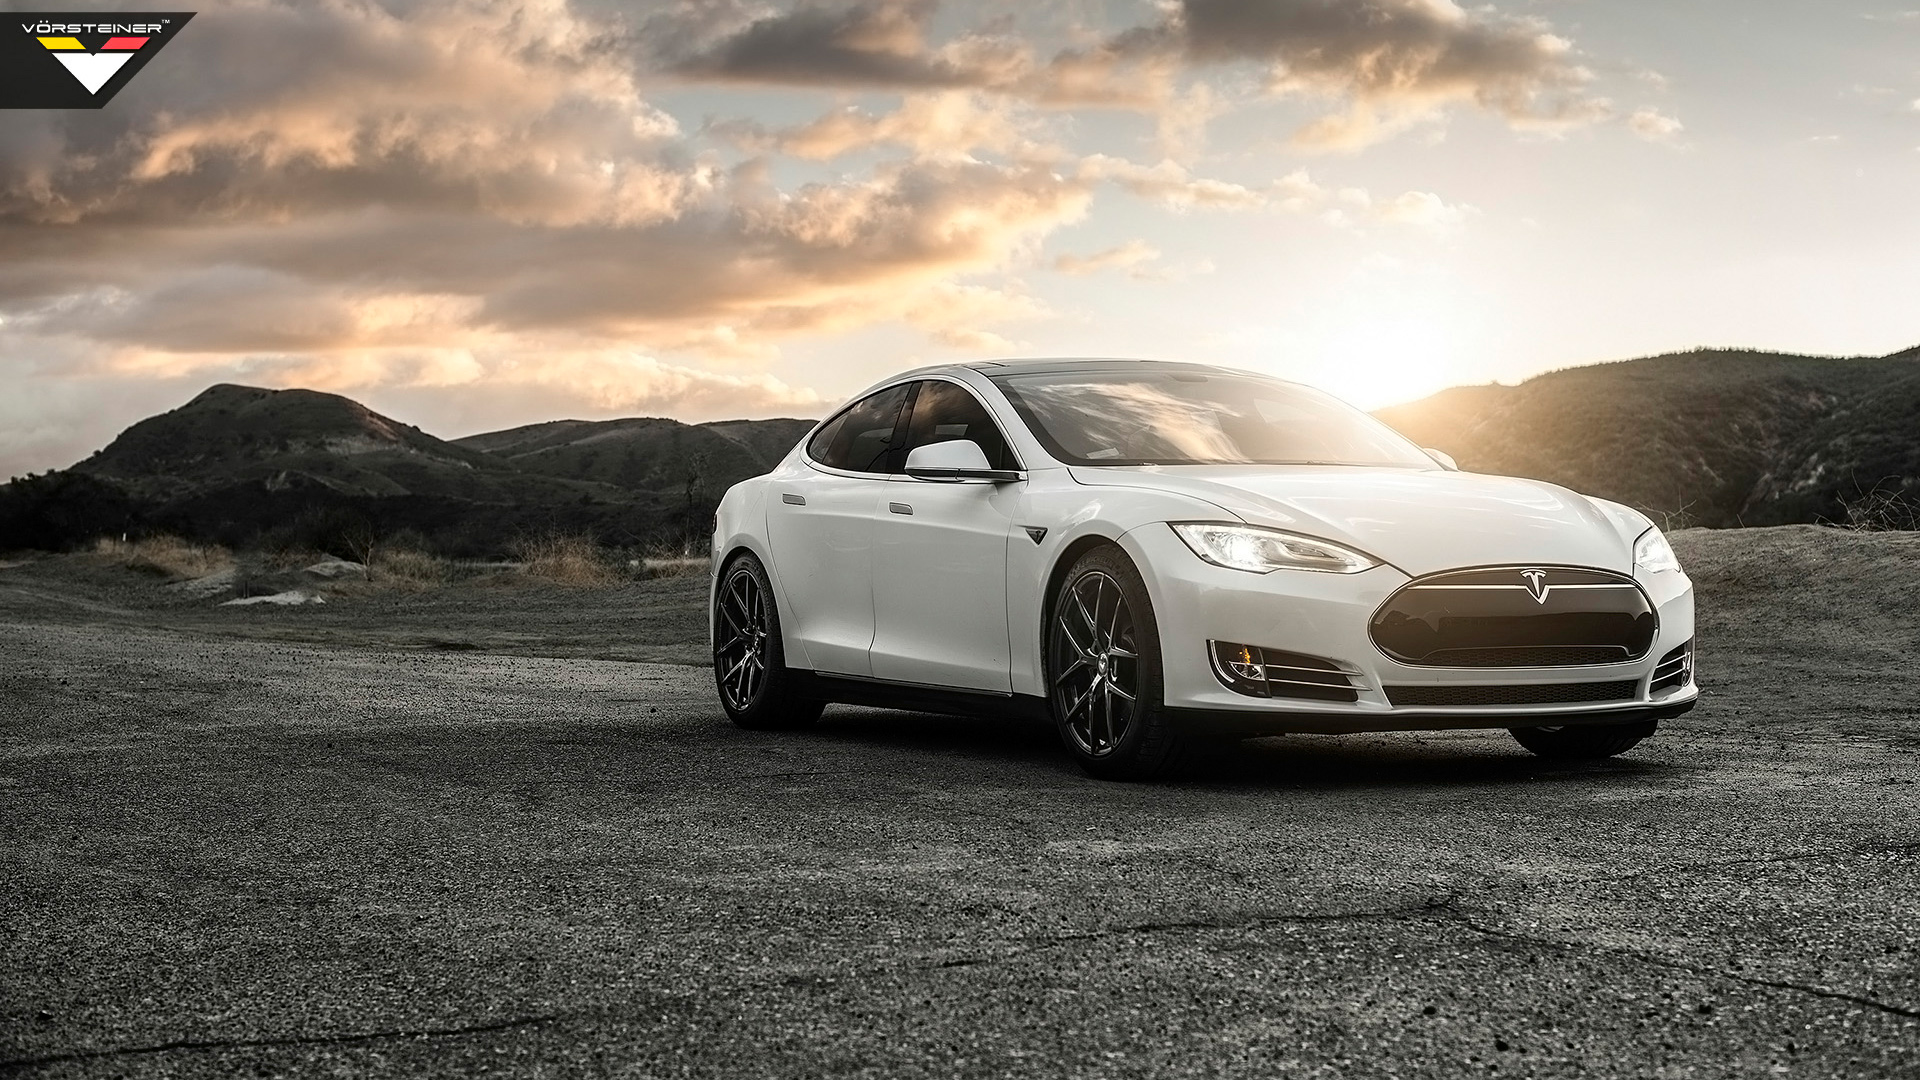 4927 views 2014 Vorsteiner Tesla Model S P85